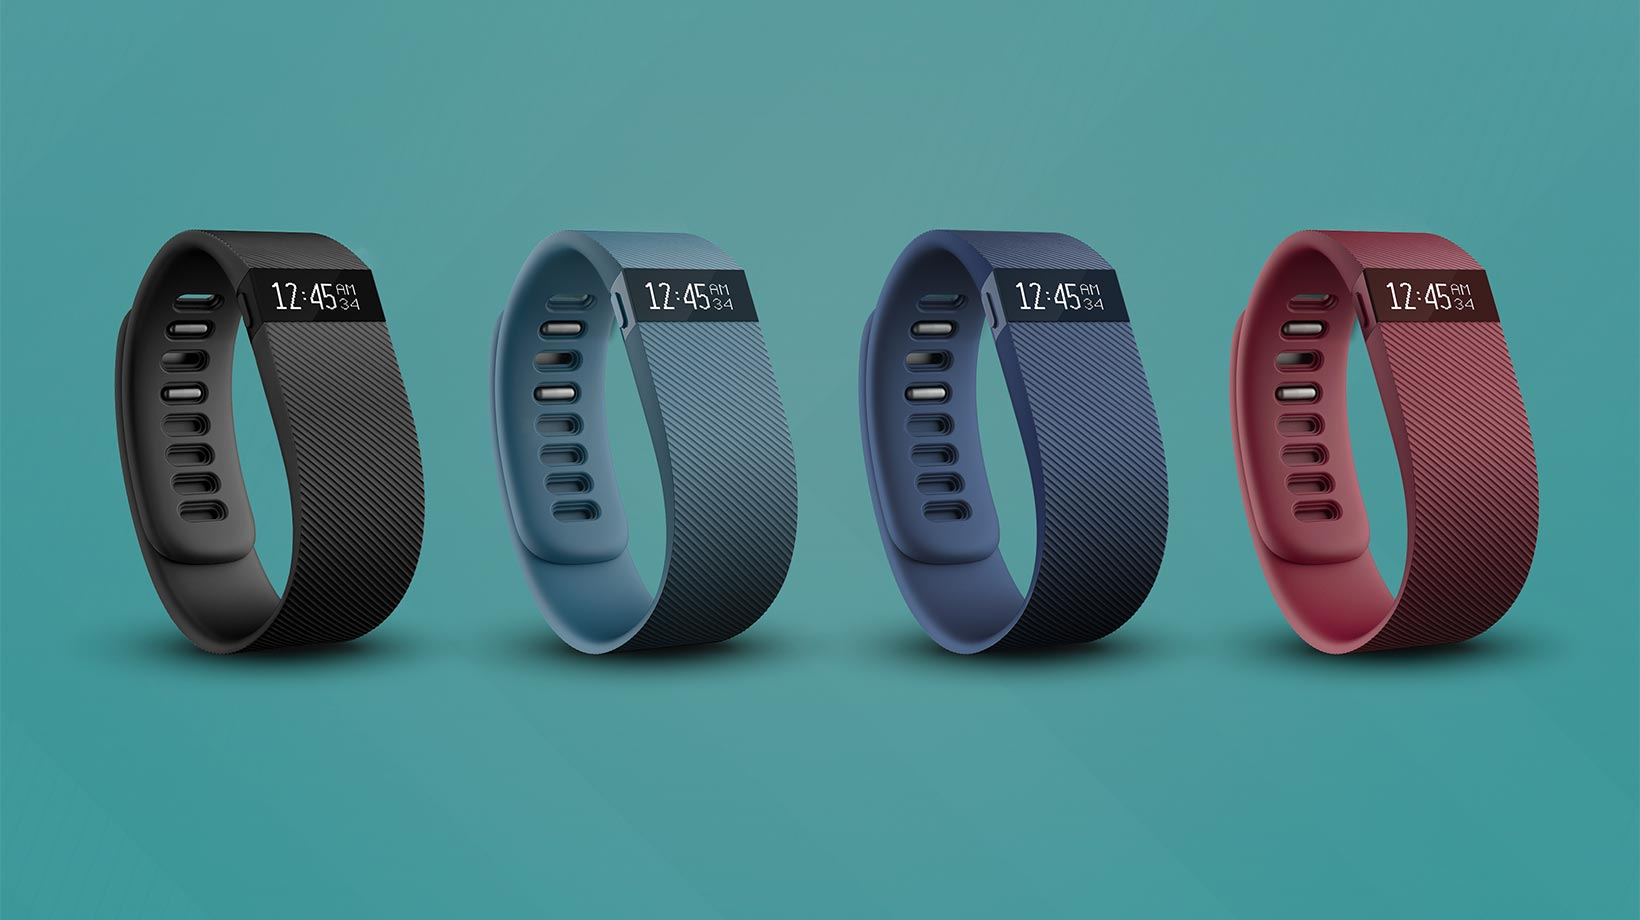 The Fitbit Charge HR activity wristband (Photo courtesy of Fitbit).